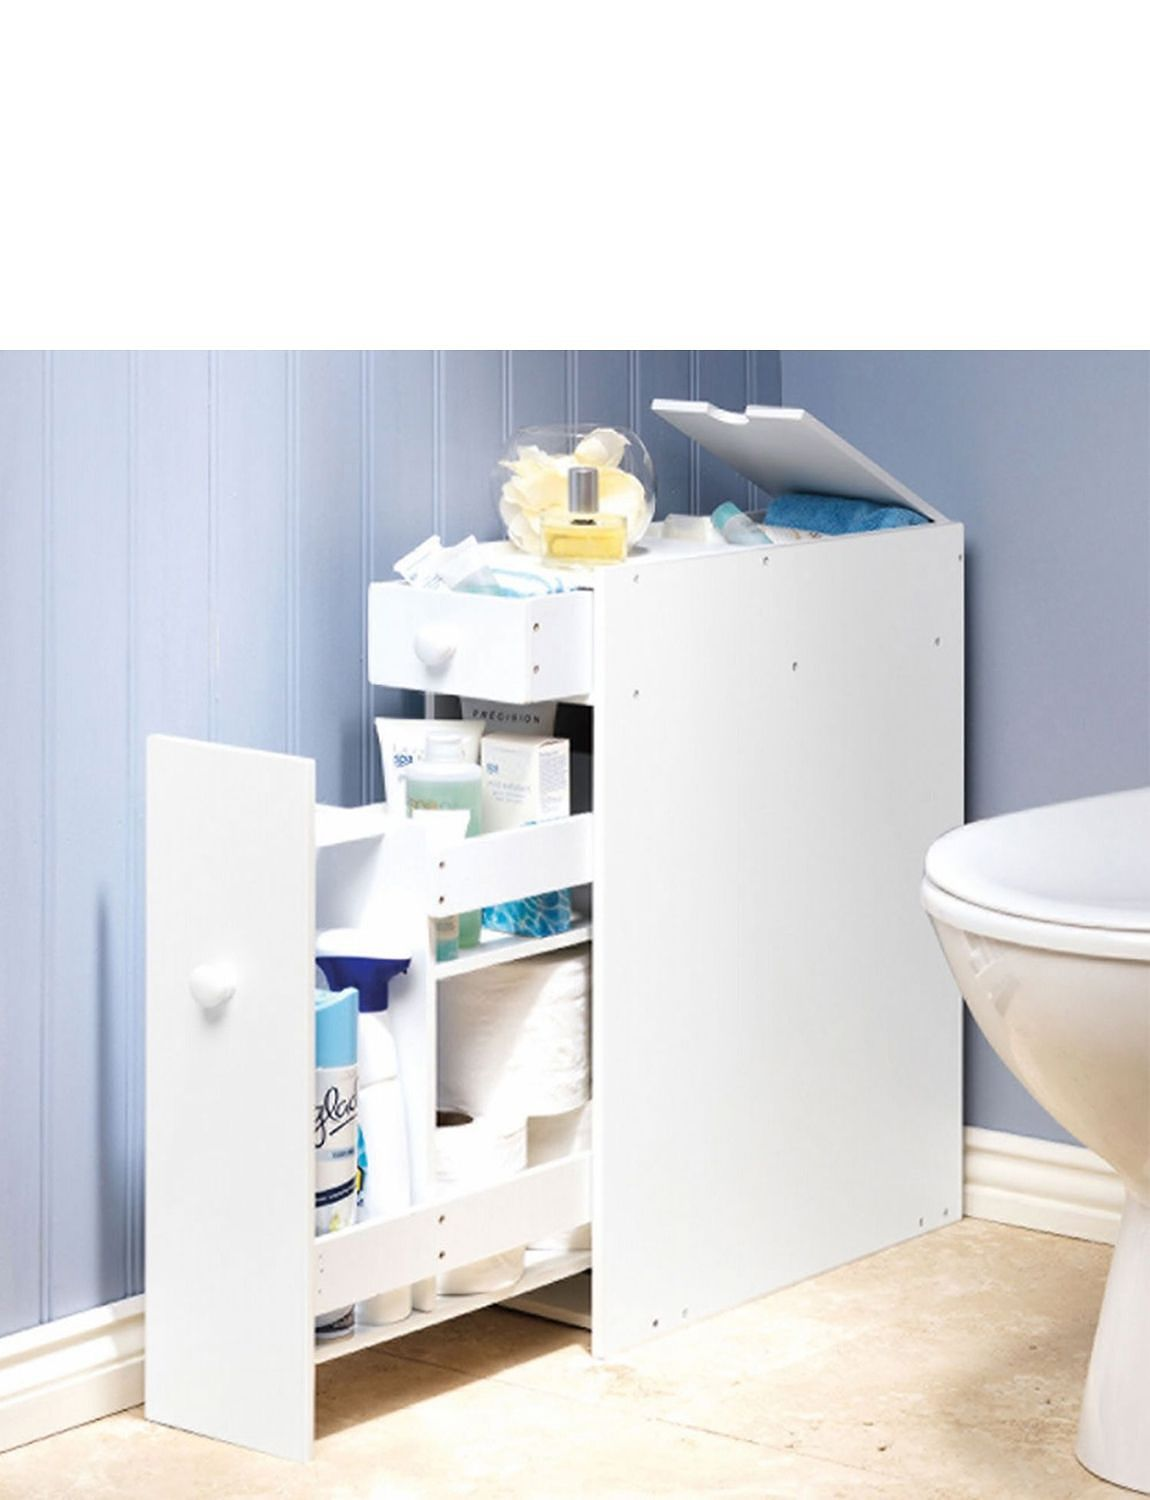 Bathroom Organiser slim-line bathroom organiser - home bathroom